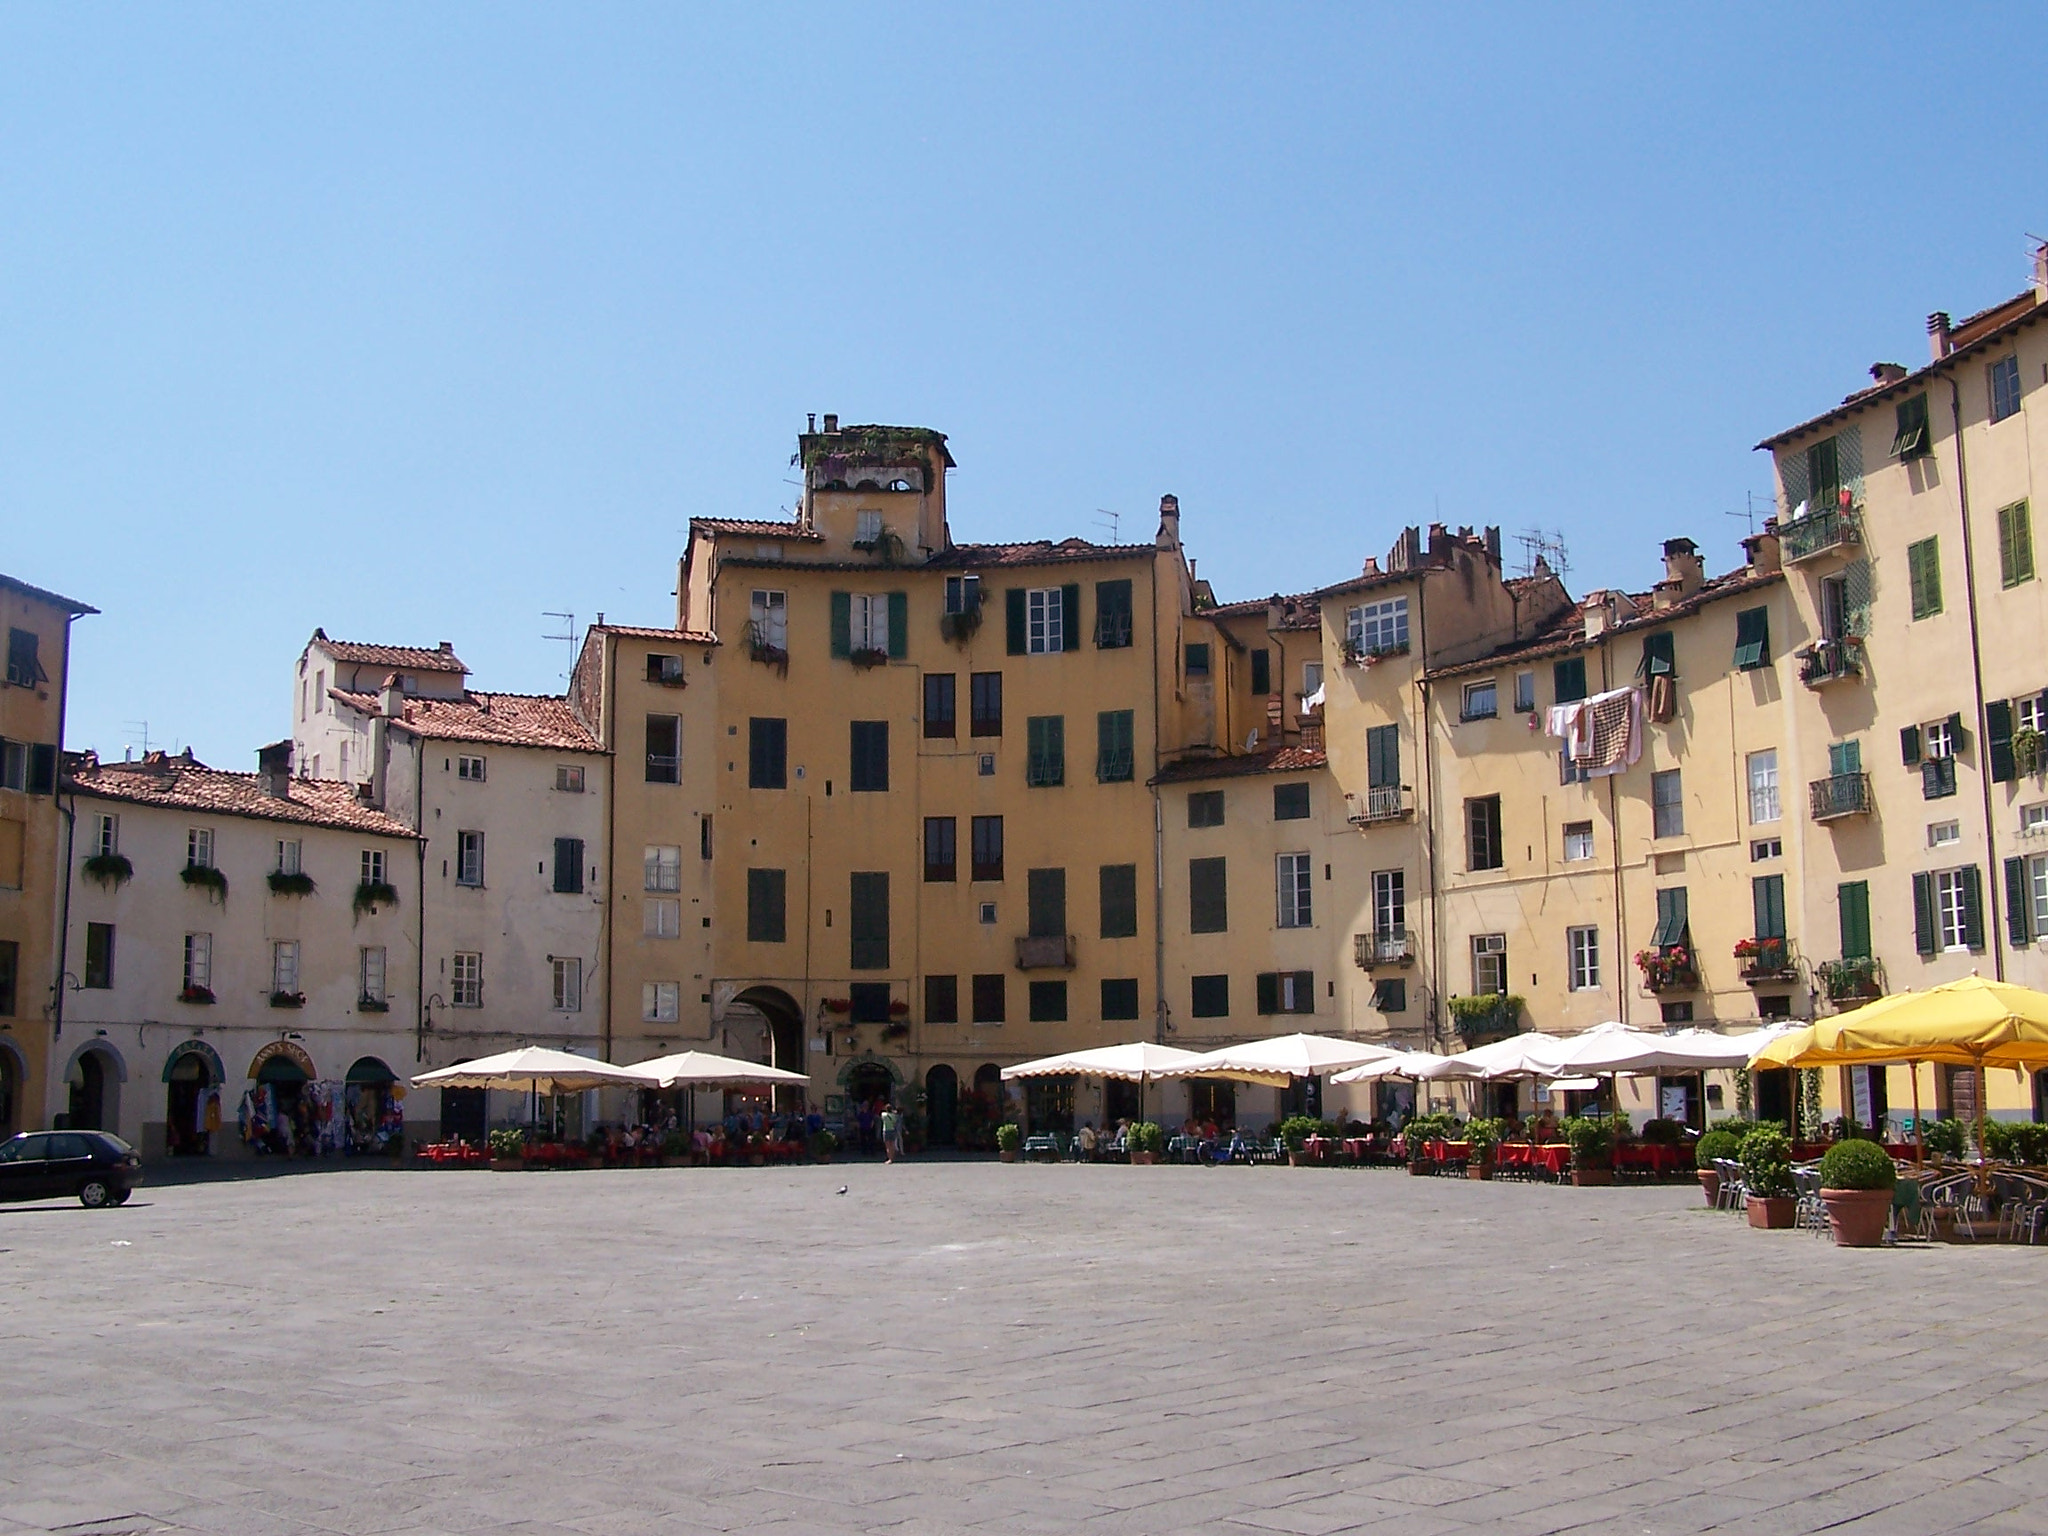 Photograph Piazza a Lucca  by Marcello  Savaia on 500px